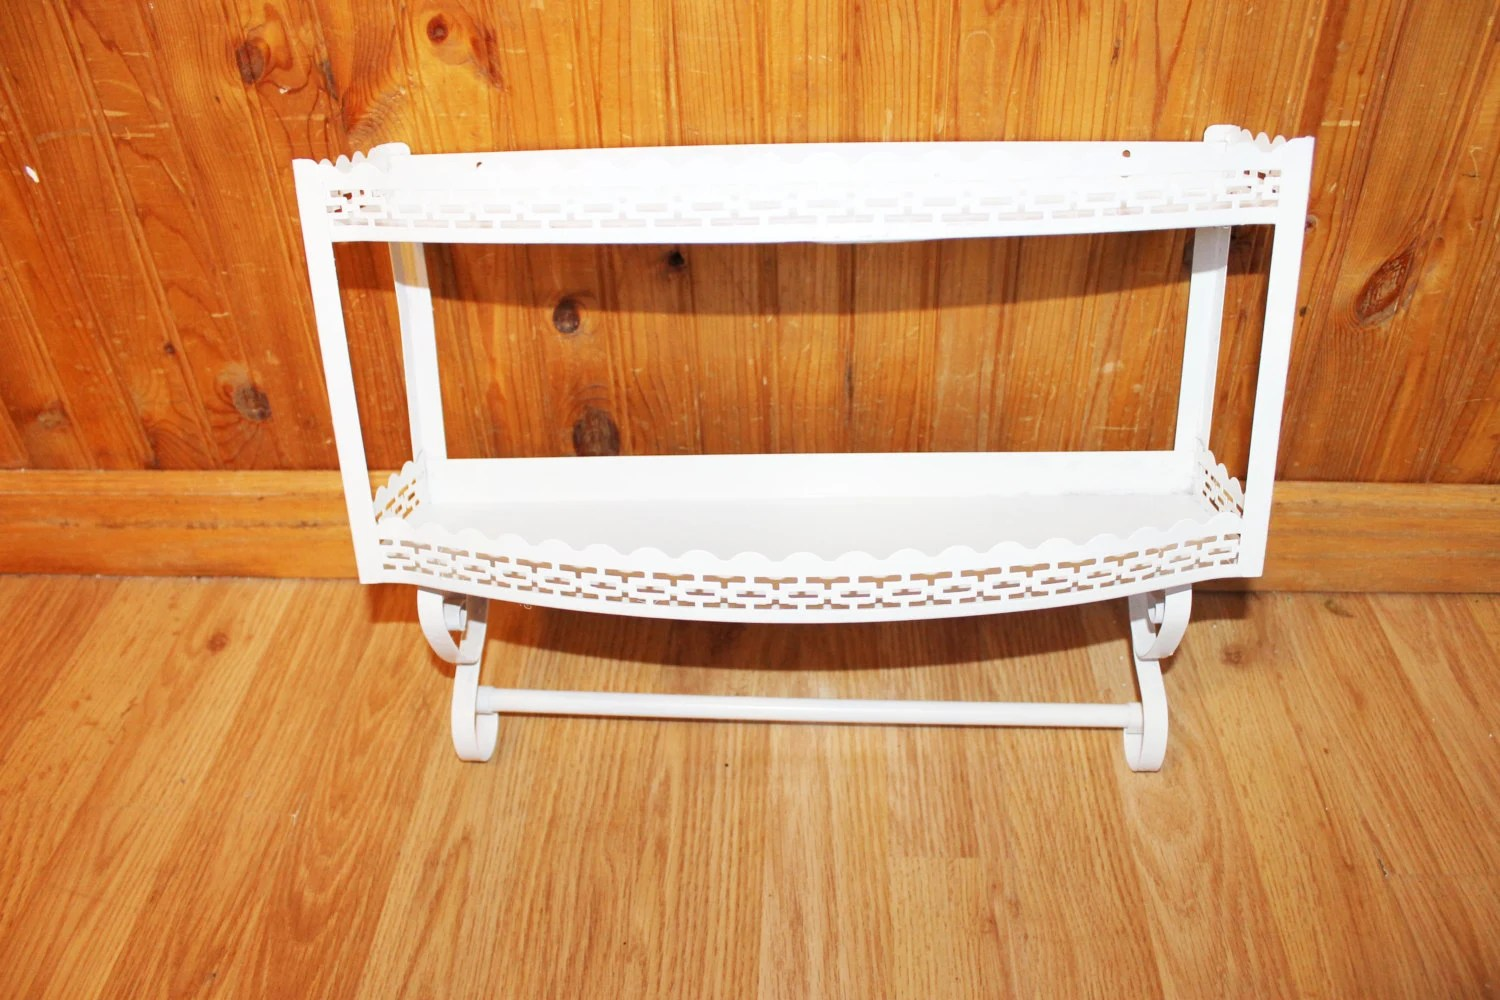 Vintage White Metal Double Wall Shelf With Scroll Cutout Design And Towel Hanging Rack Bedroom